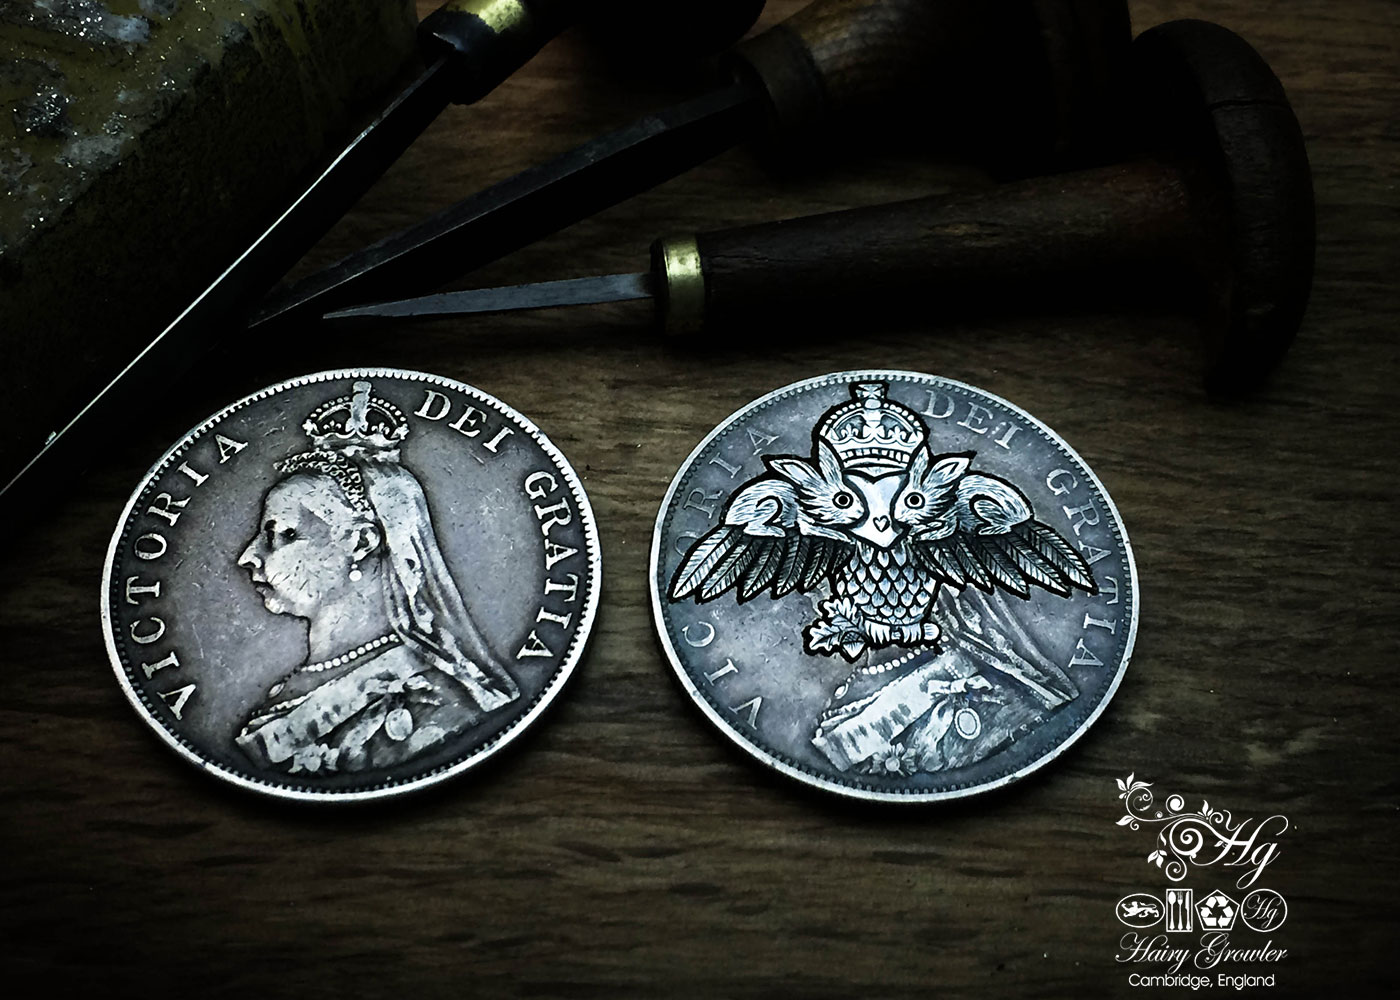 handmade and recycled silver coins hare-y-gr-owl-er charm for a tree sculpture, necklace or bracelet